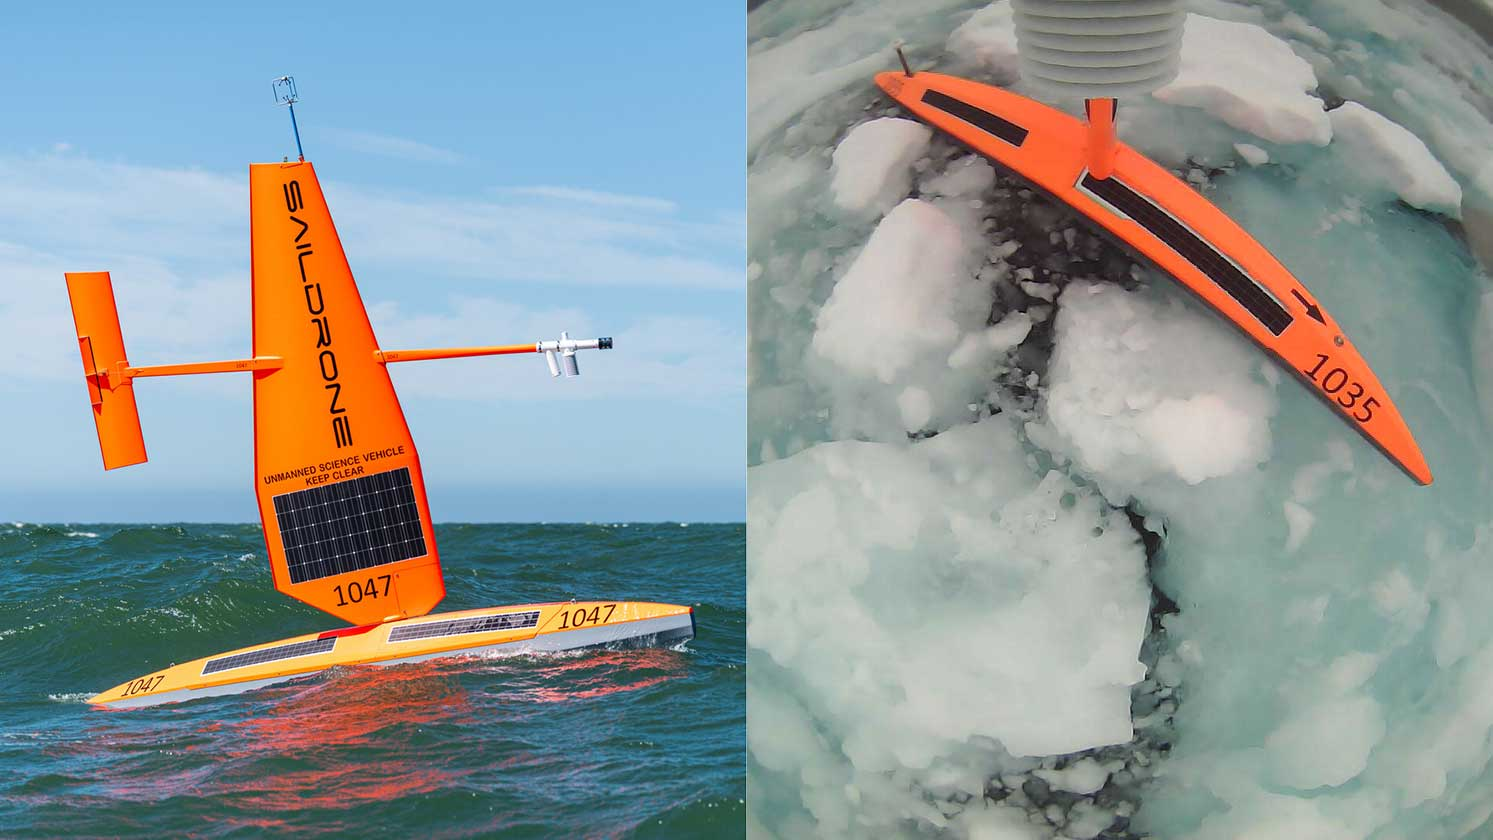 Saildrone unmanned surface vehicles (USVs) will operate in ice-covered parts of the North Atlantic and Arctic Oceans to gather critical information about air-sea interaction in these difficult-to-navigate parts of the ocean in order to improve the accuracy of ice and weather forecasts in the region. Photo courtesy of Saildrone.